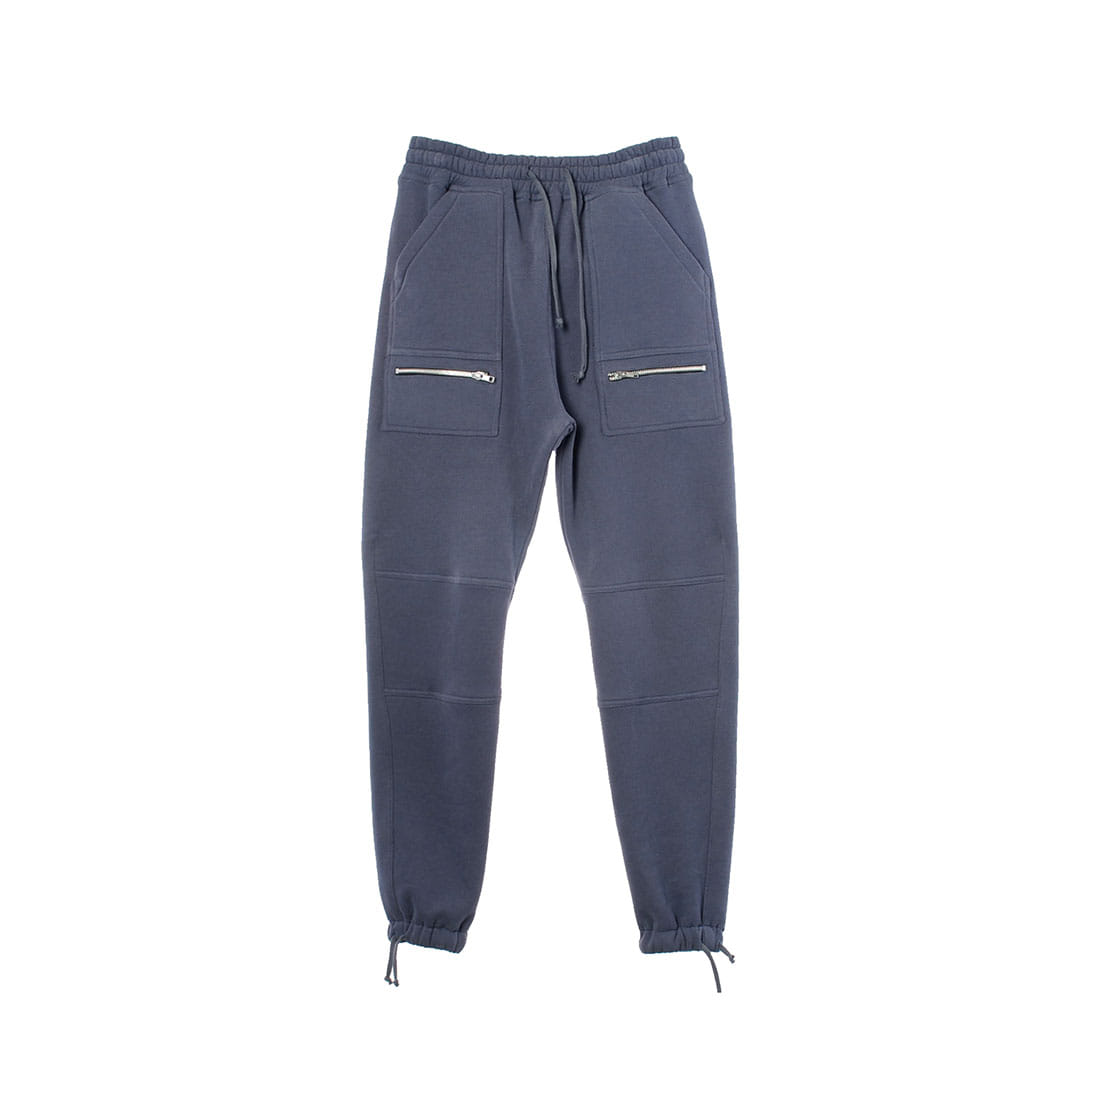 BLUE GRAY STRING JOGGER PANTS